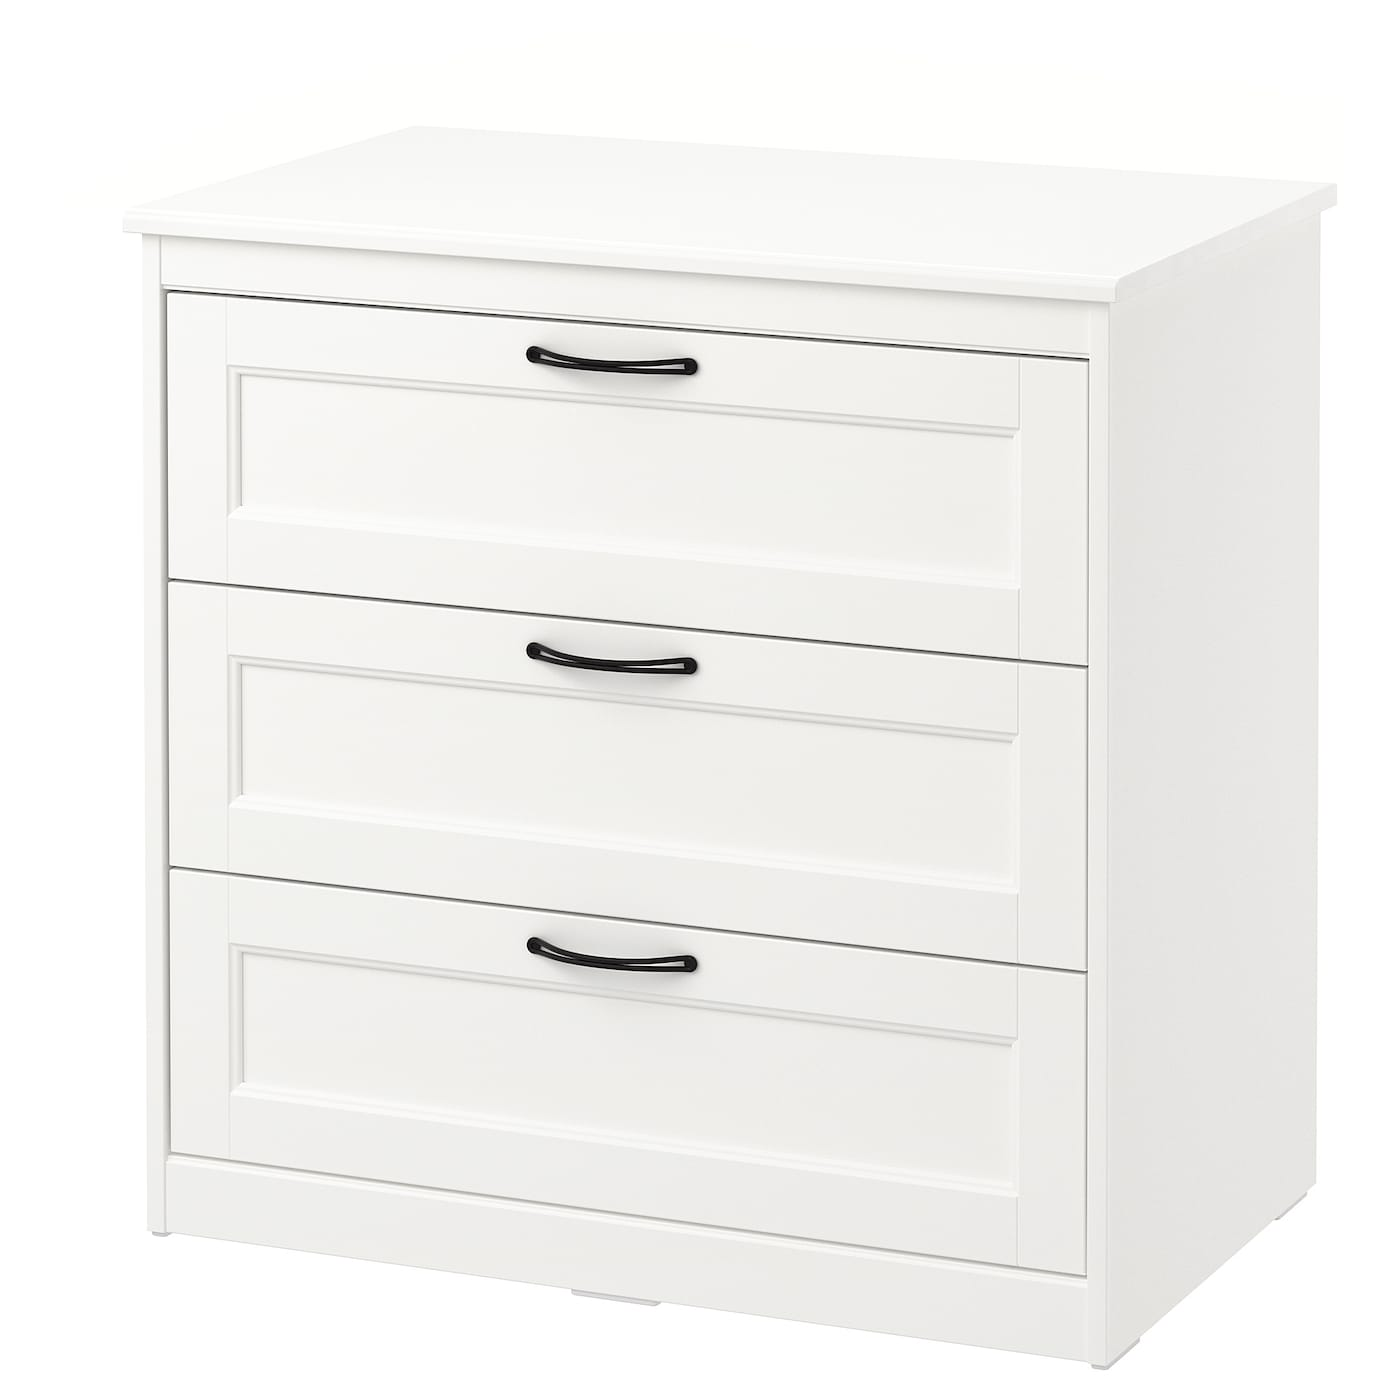 IKEA SONGESAND chest of 3 drawers Smooth running drawers with pull-out stop.